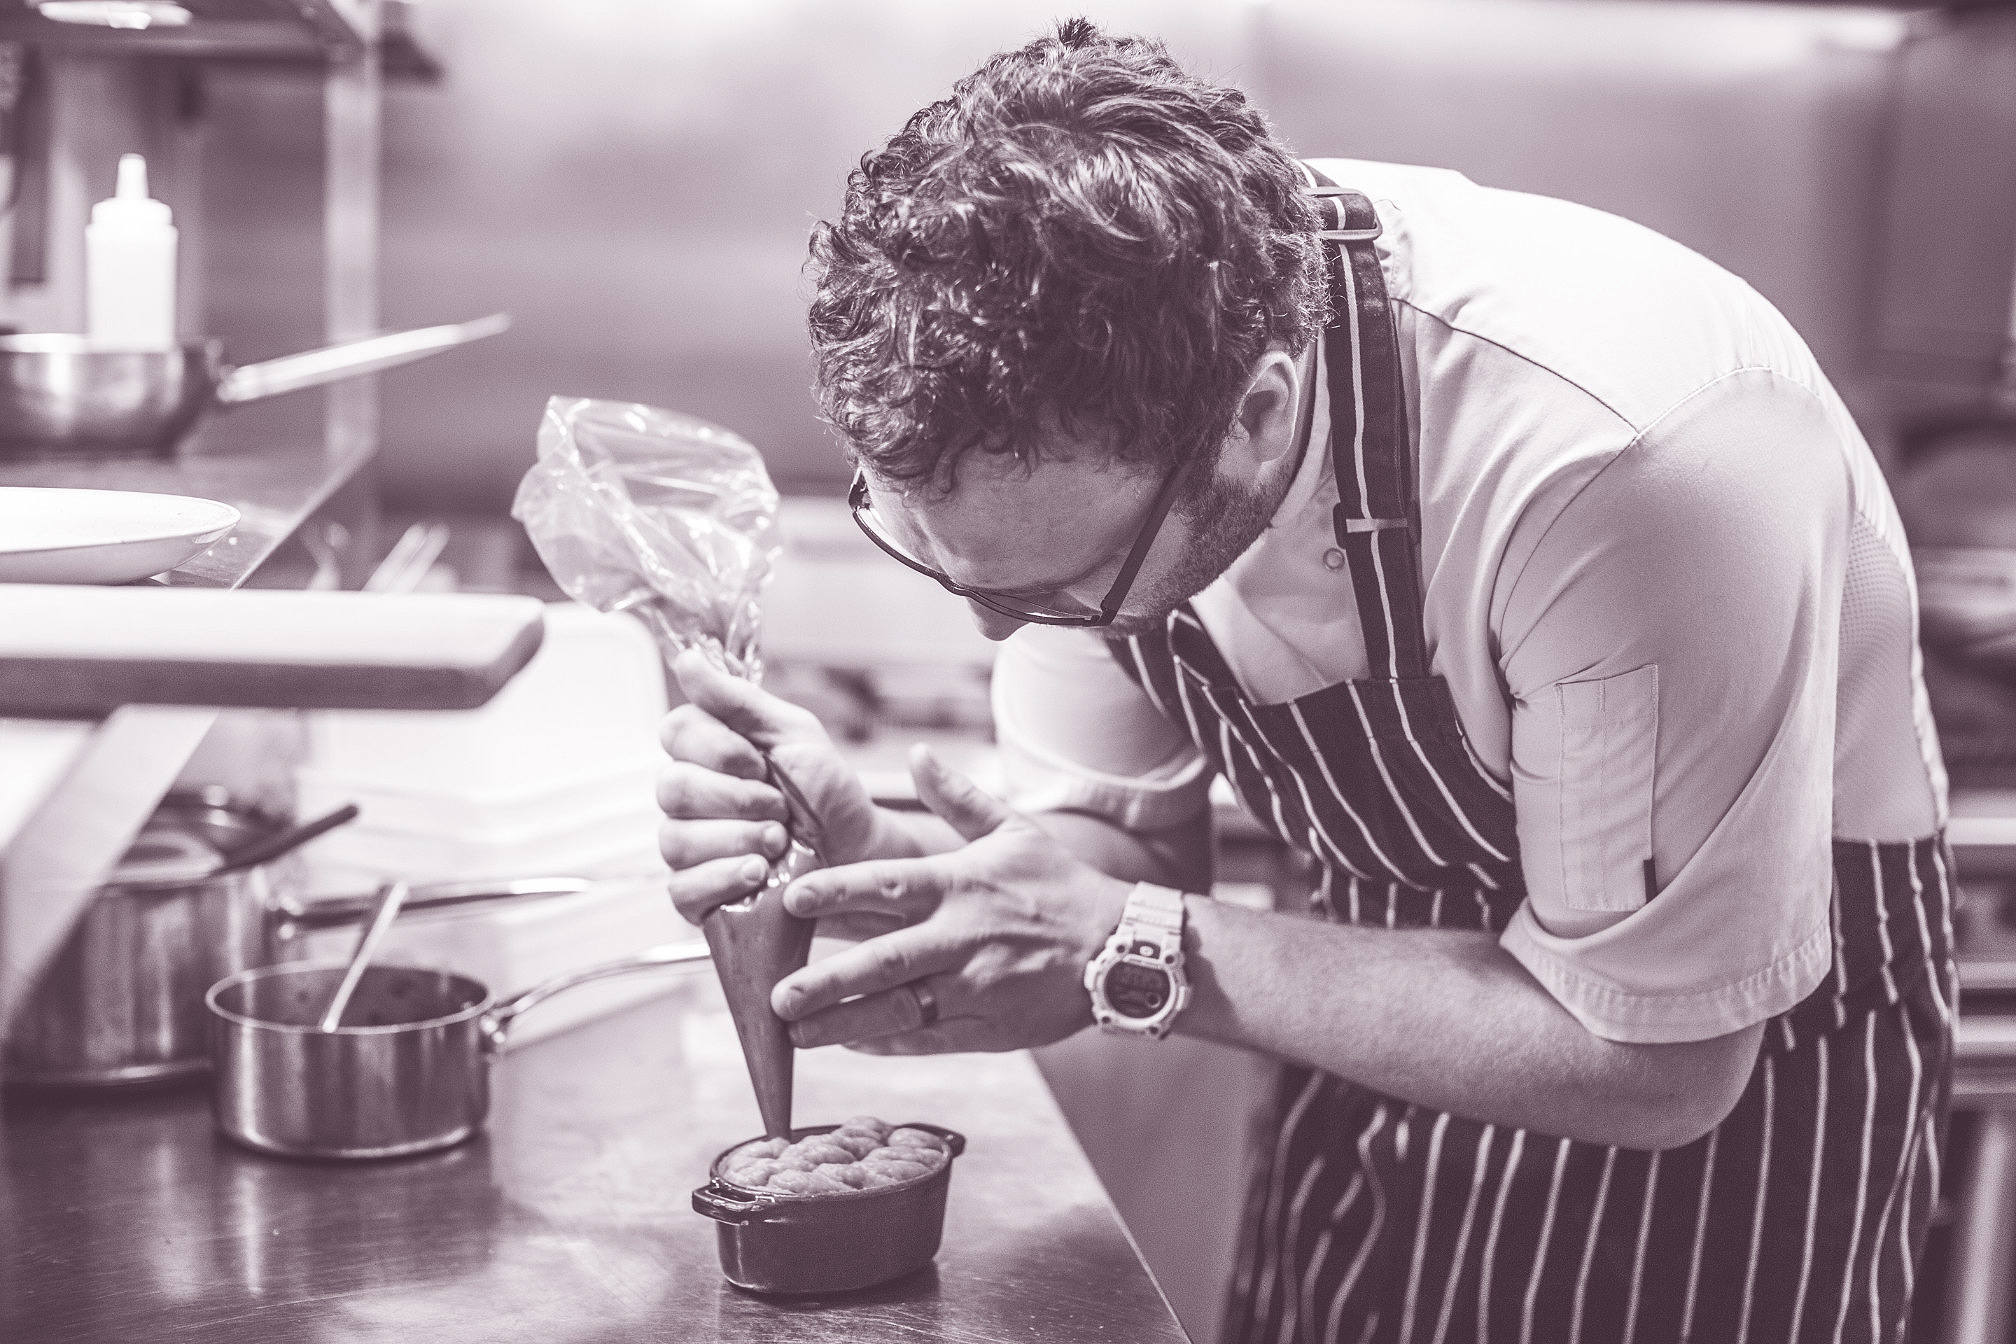 Cotswolds Chef Launches New Menu Inspired By Masterchef Experience